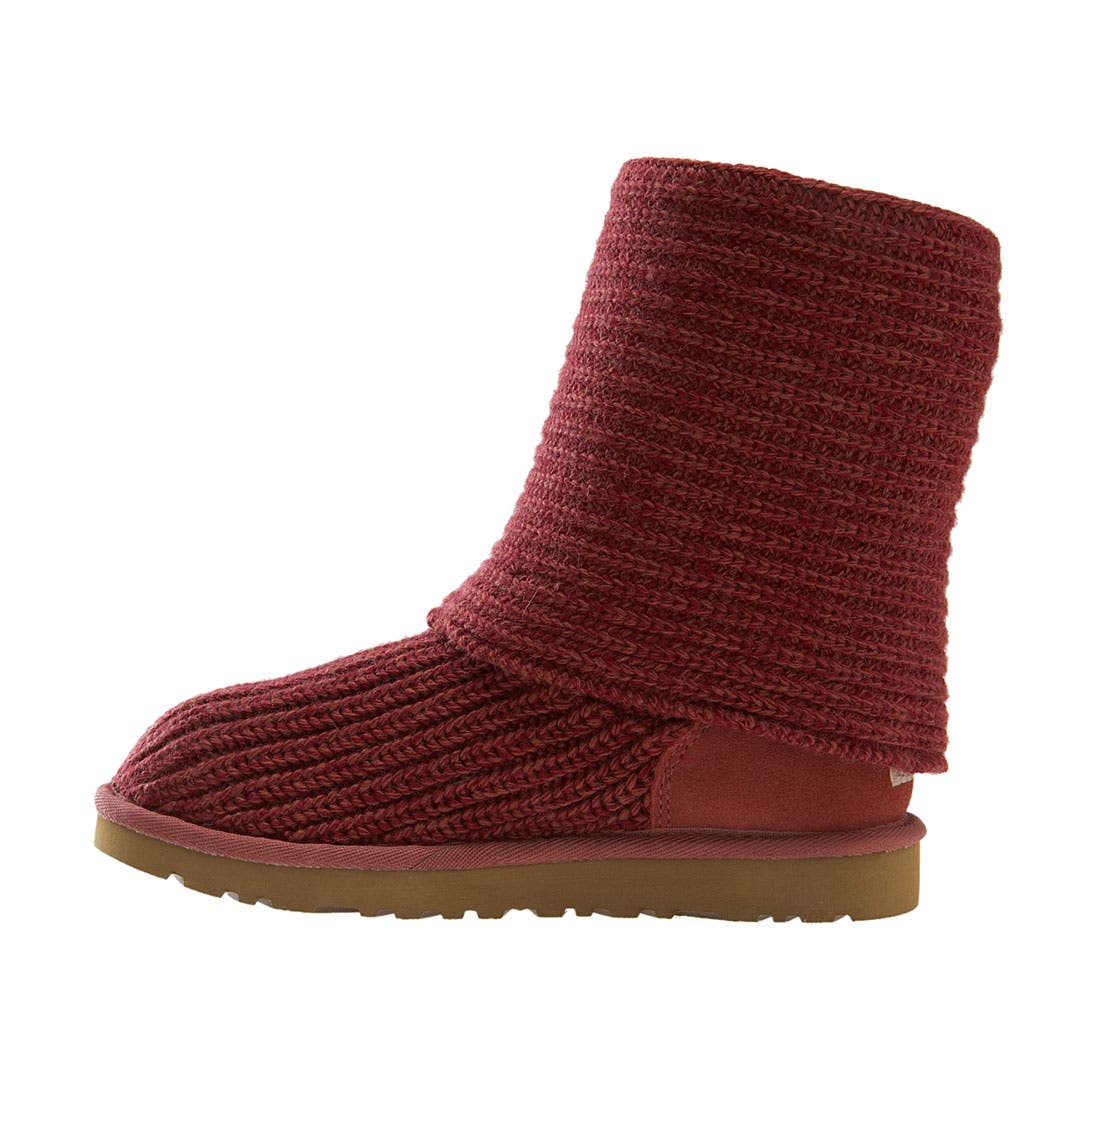 ,                             'Cardy' Classic Knit Boot,                             Alternate thumbnail 52, color,                             605